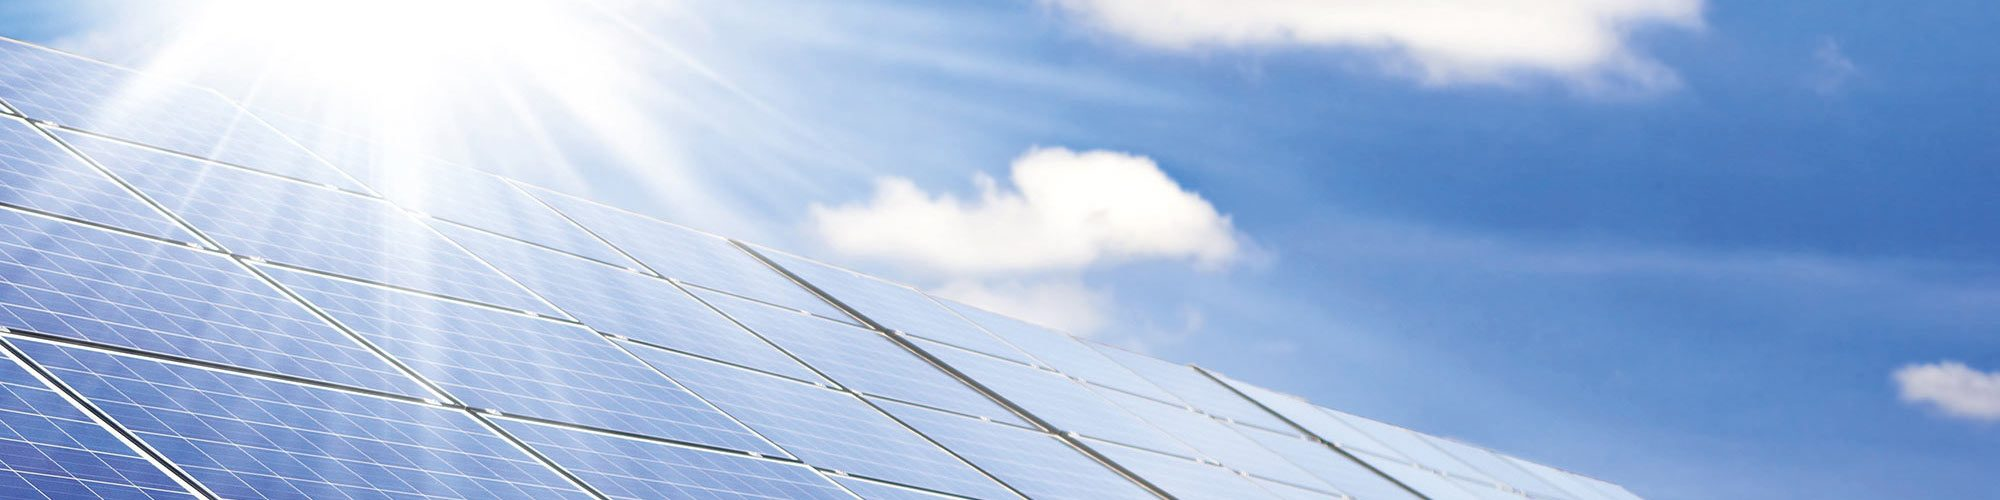 Operating photovoltaic systems safely with high availability